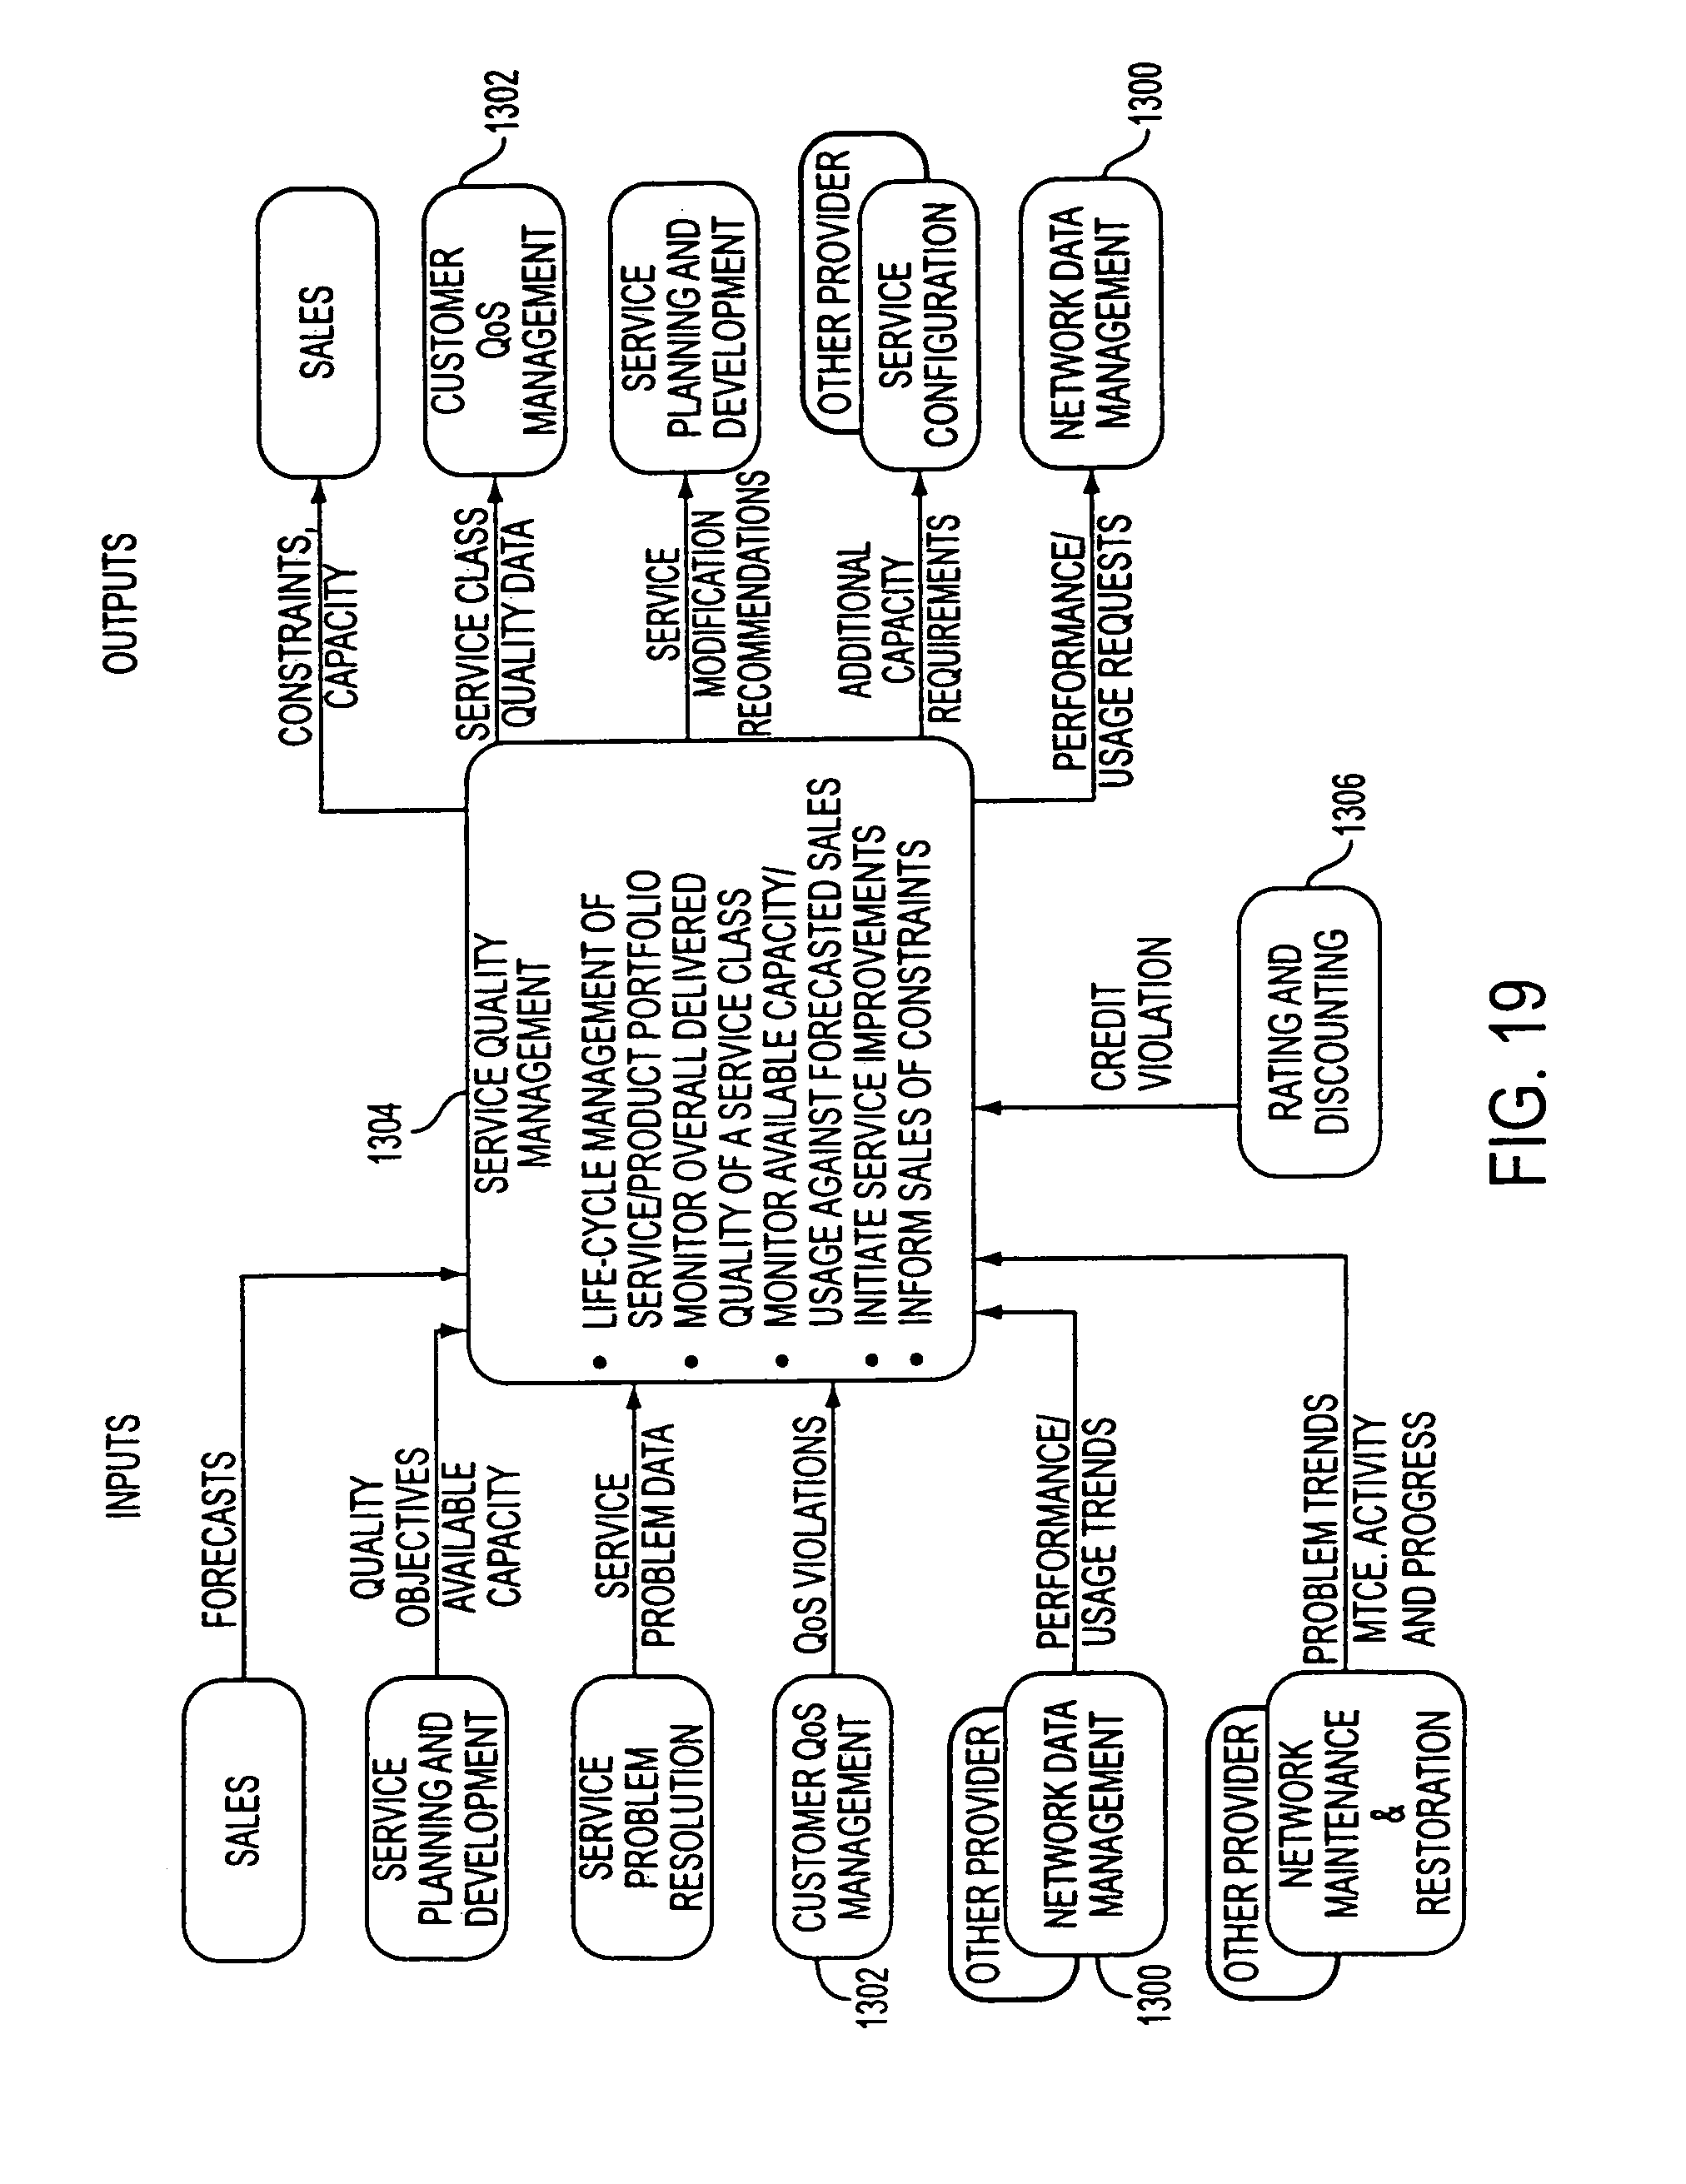 Patent Us 7124101 B1 Besides Electronic Schematics Symbols Circuits Likewise Images